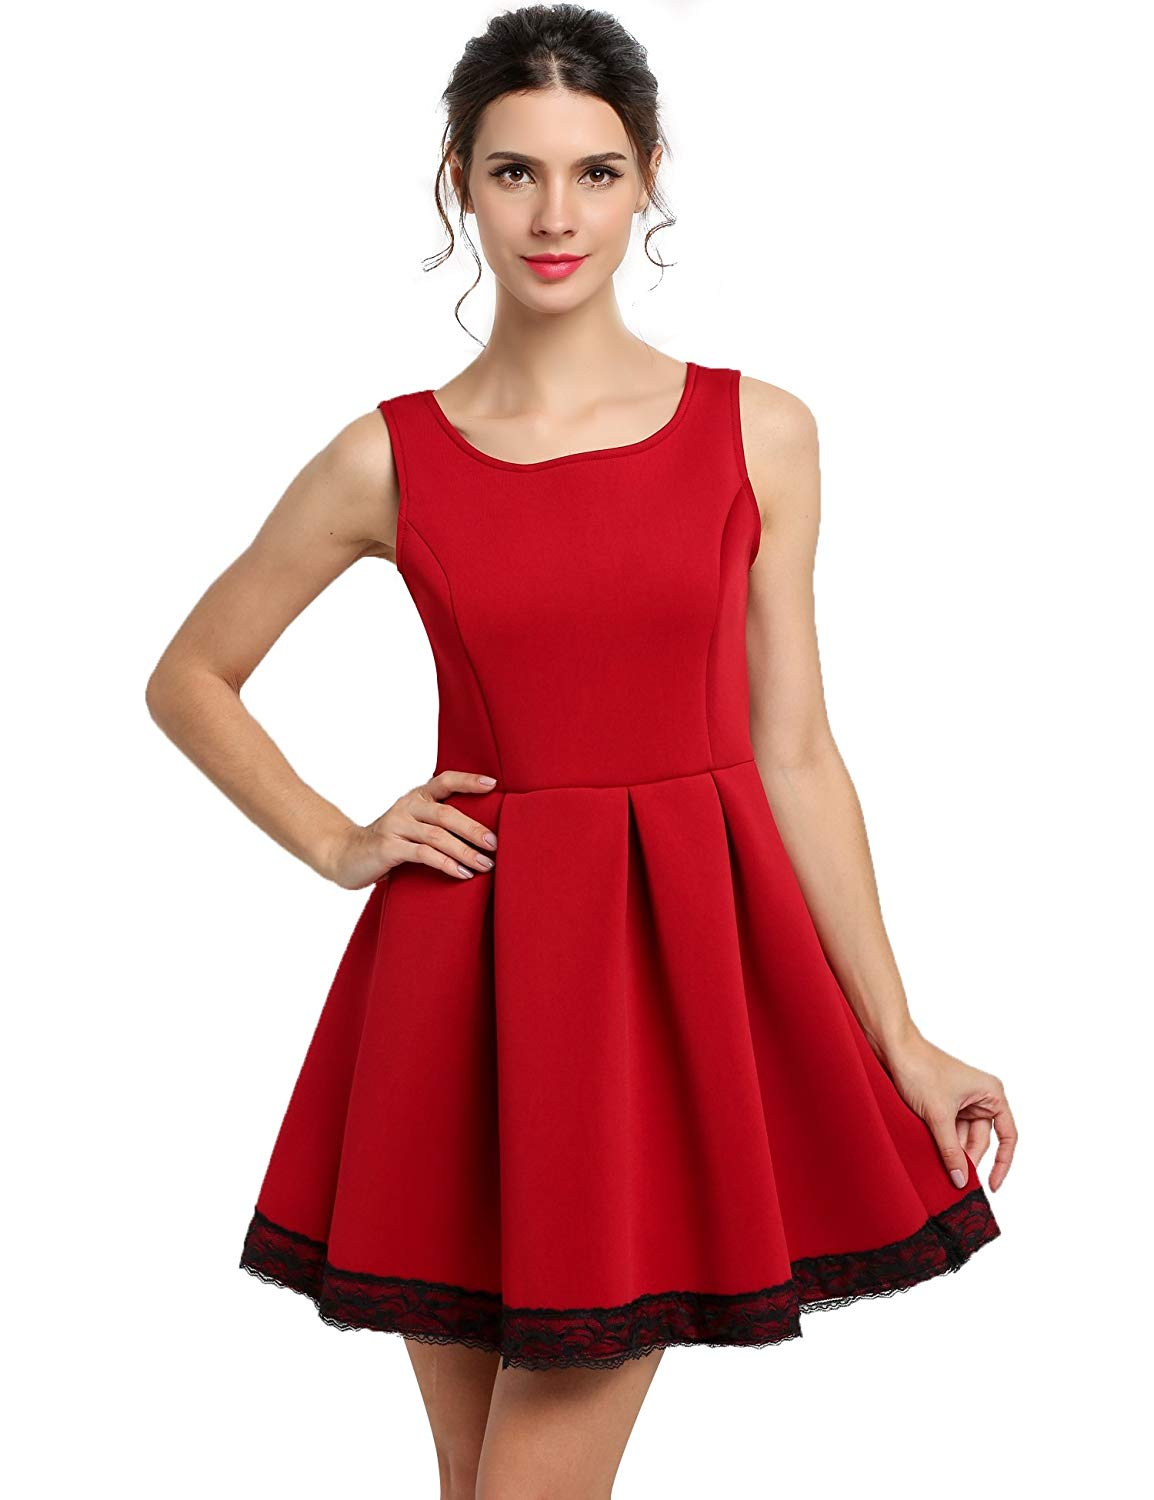 Eshion Vintage 1950s Solid Fit and Flare Dress Party Cocktail Dress